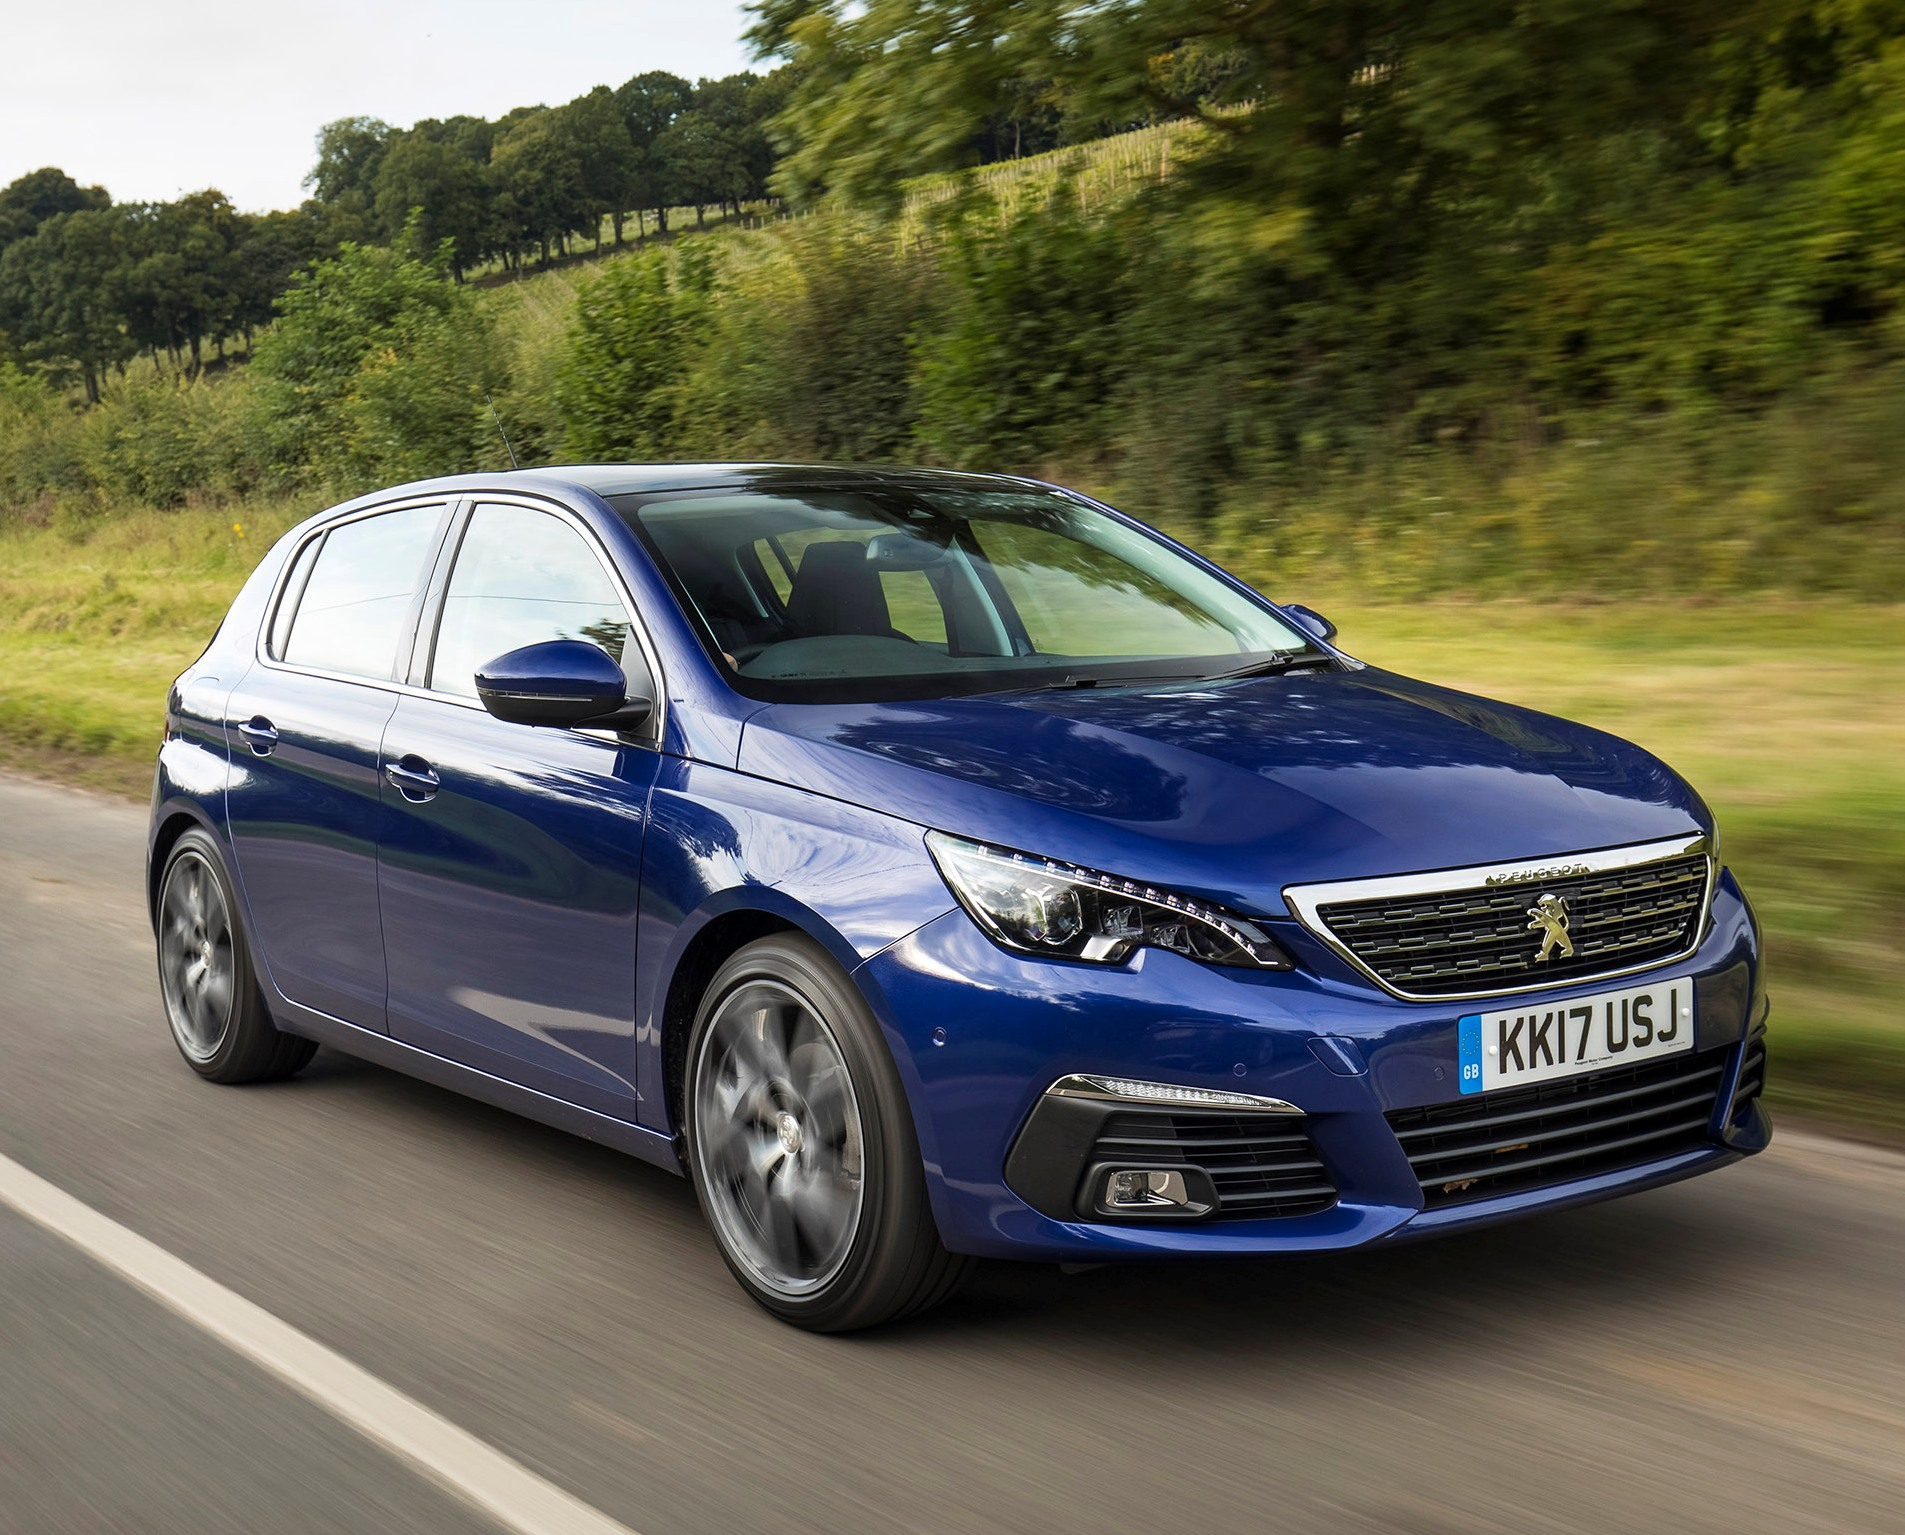 peugeot 308 gt line blue hdi 130 road test wheels alive